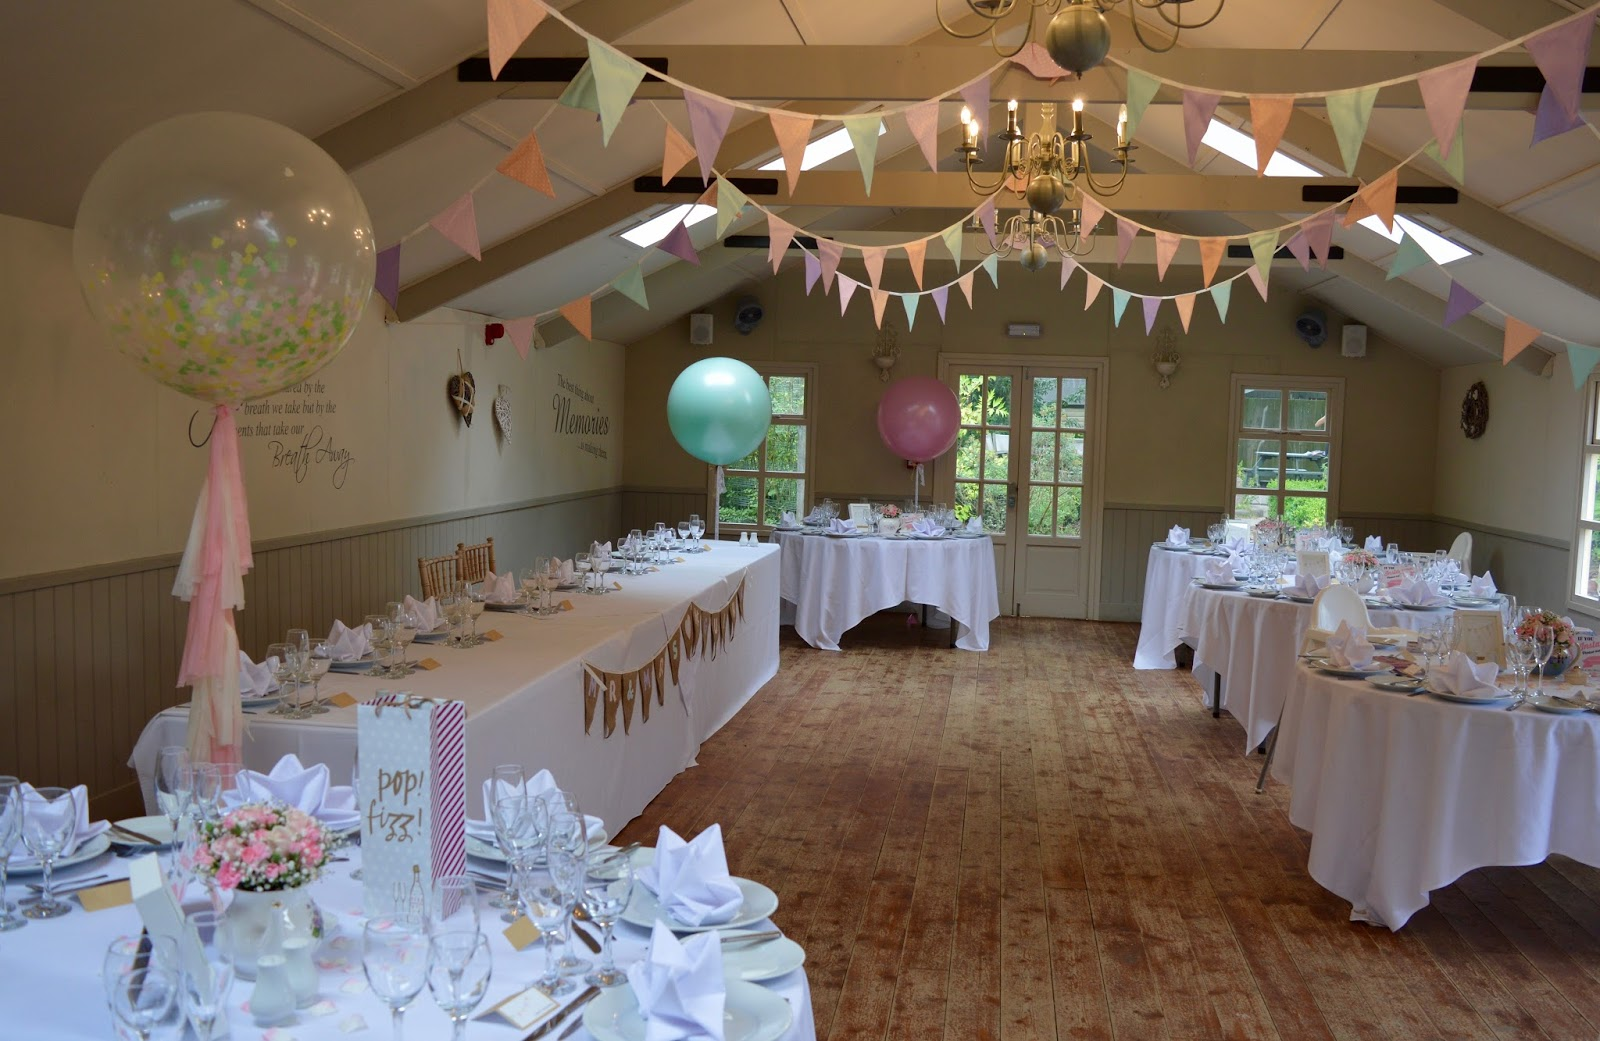 Weddings at The Parlour at Blagdon in Northumberland - the willow room decorations